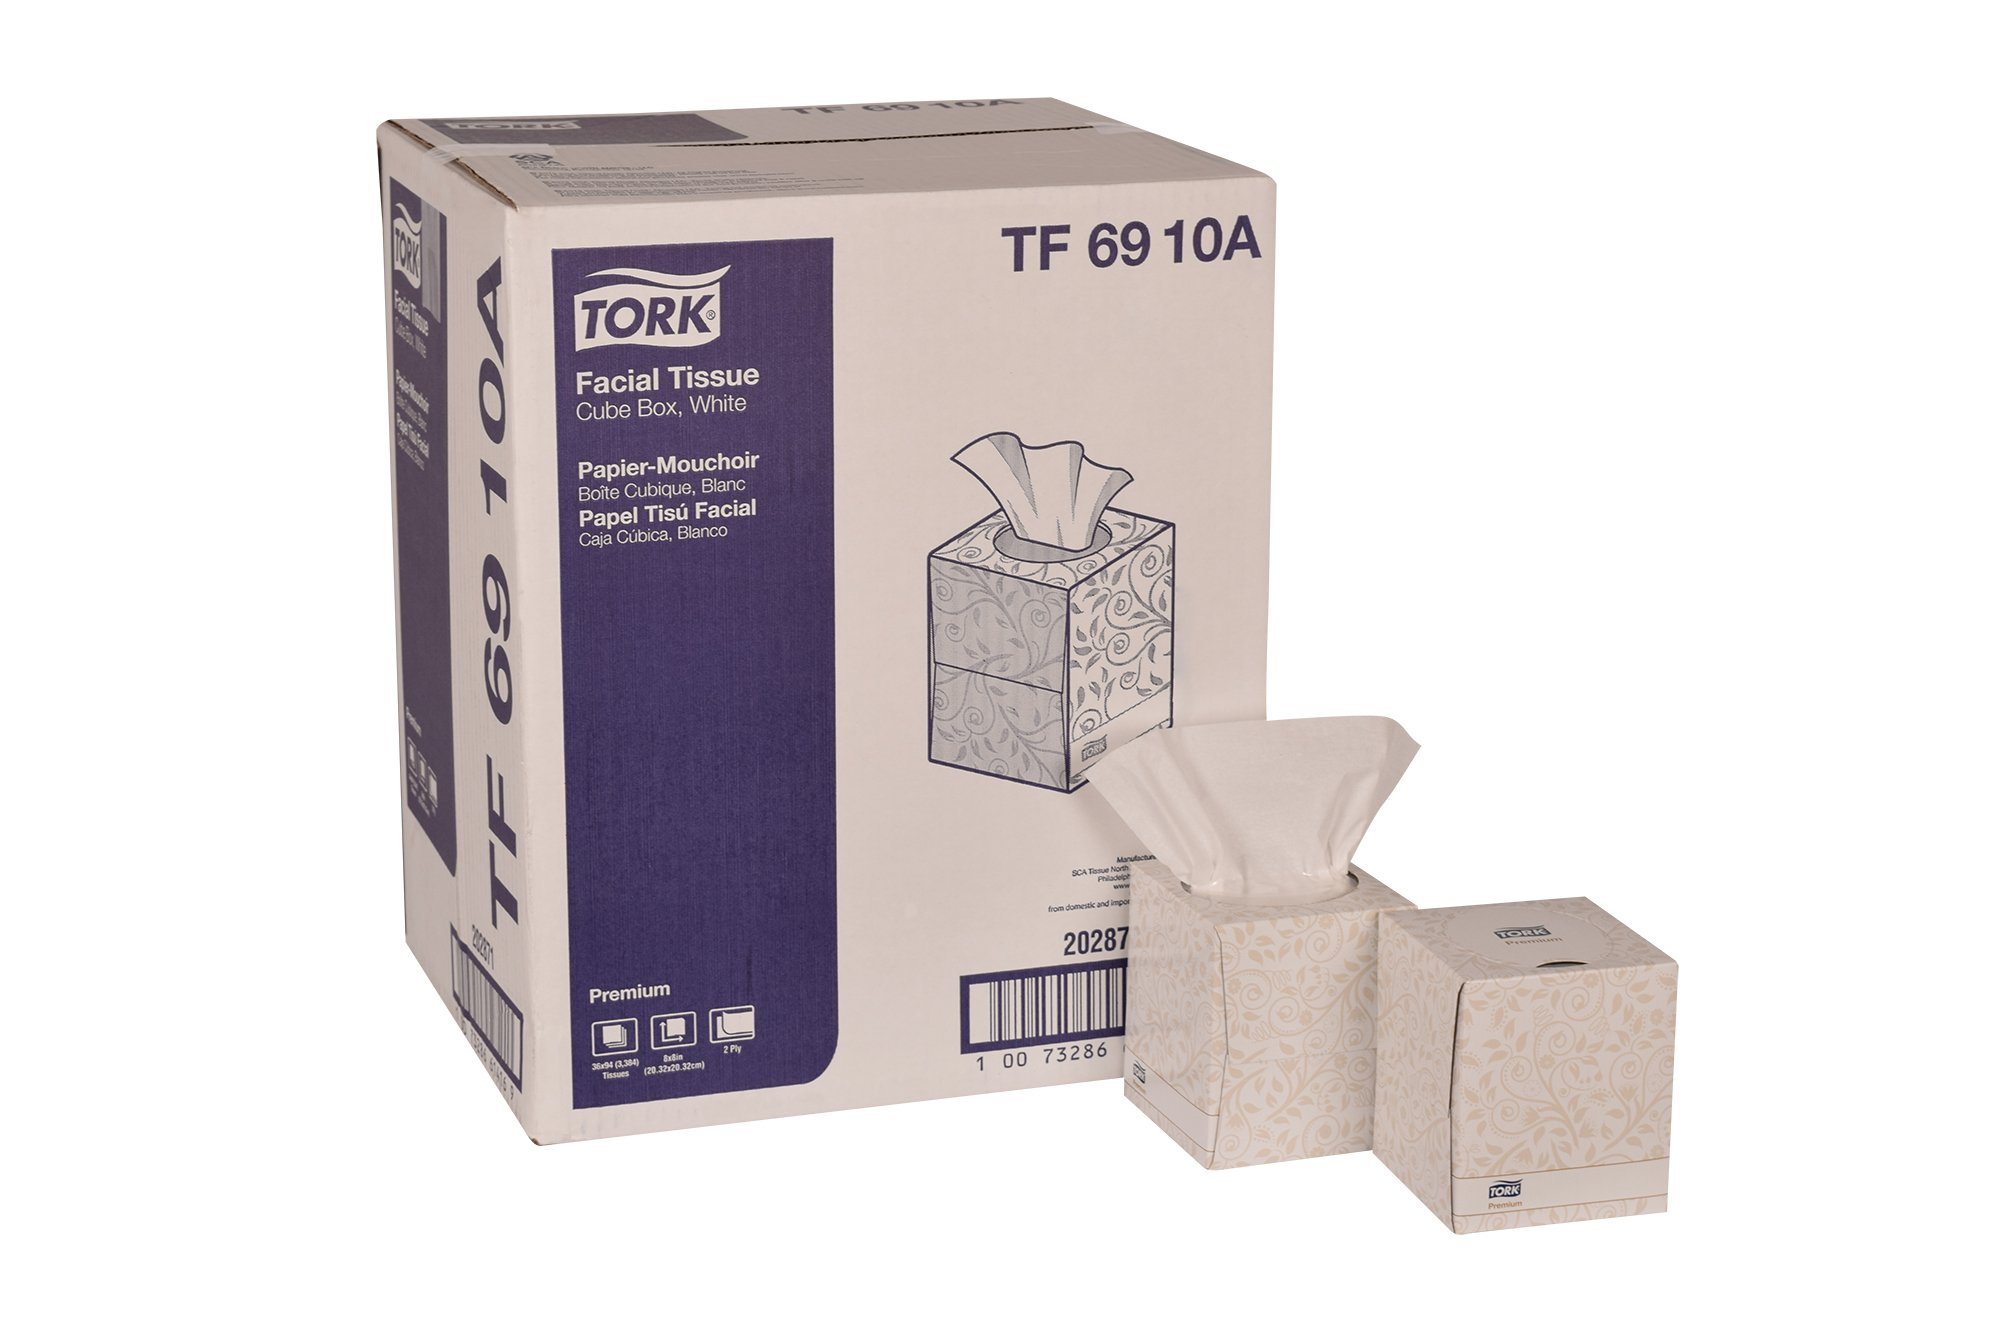 Tork Premium TF6910A Facial Tissue, Cube Box, 2-Ply, 8.0'' Width x 8.0'' Length, White (Case of 36 Boxes, 94 per Box, 3,384 Sheets)